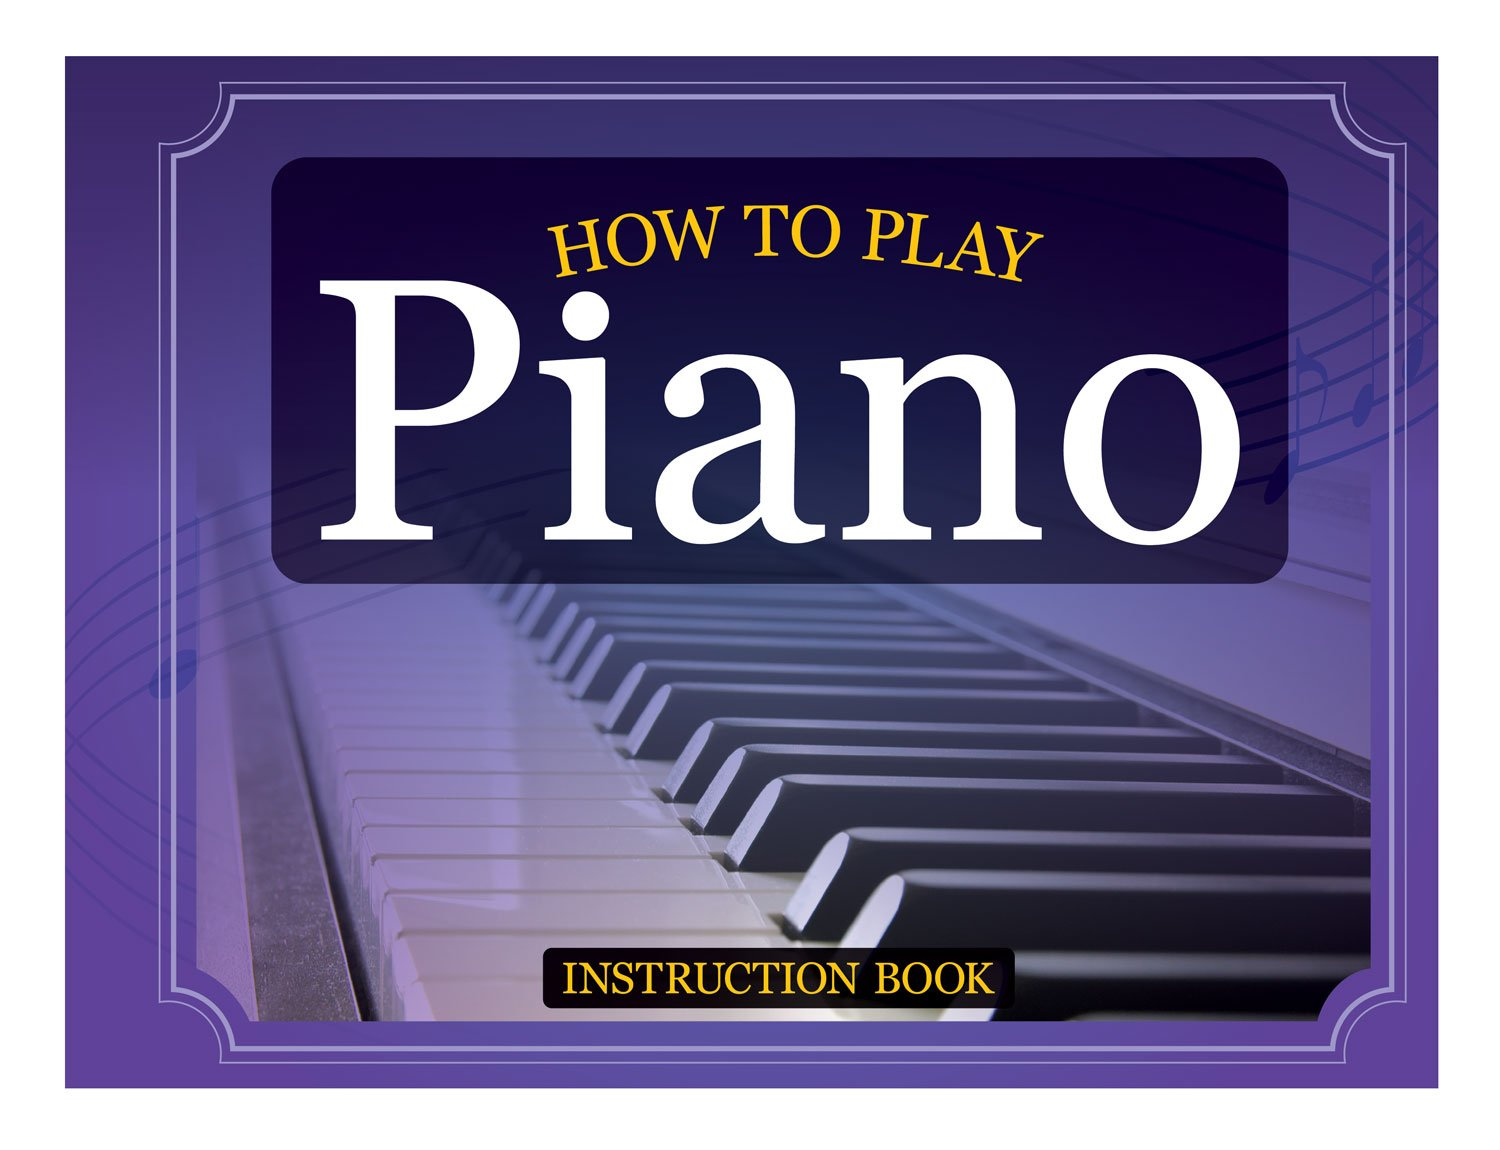 How to Play Piano Book, Flashcards & Keyboard Clings by Miles Kimball